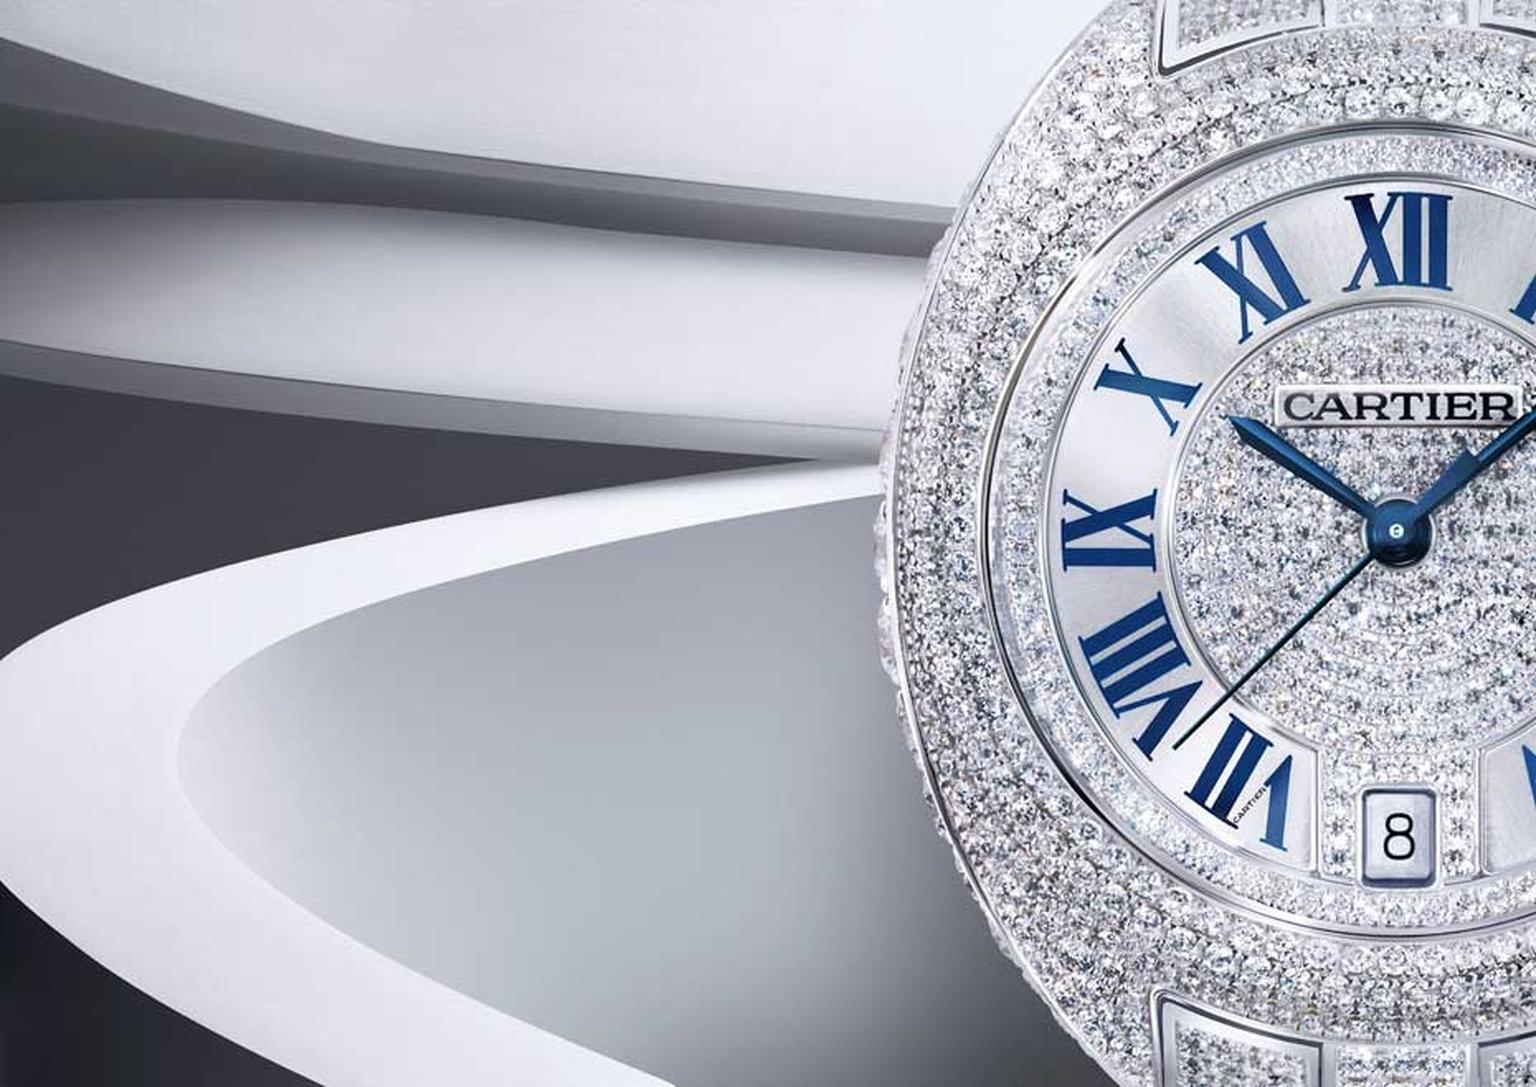 Cartier Clé ladies' model presented in a 31mm white gold case is offered in a luxurious full pavé setting. (Eric Maillet © Cartier)